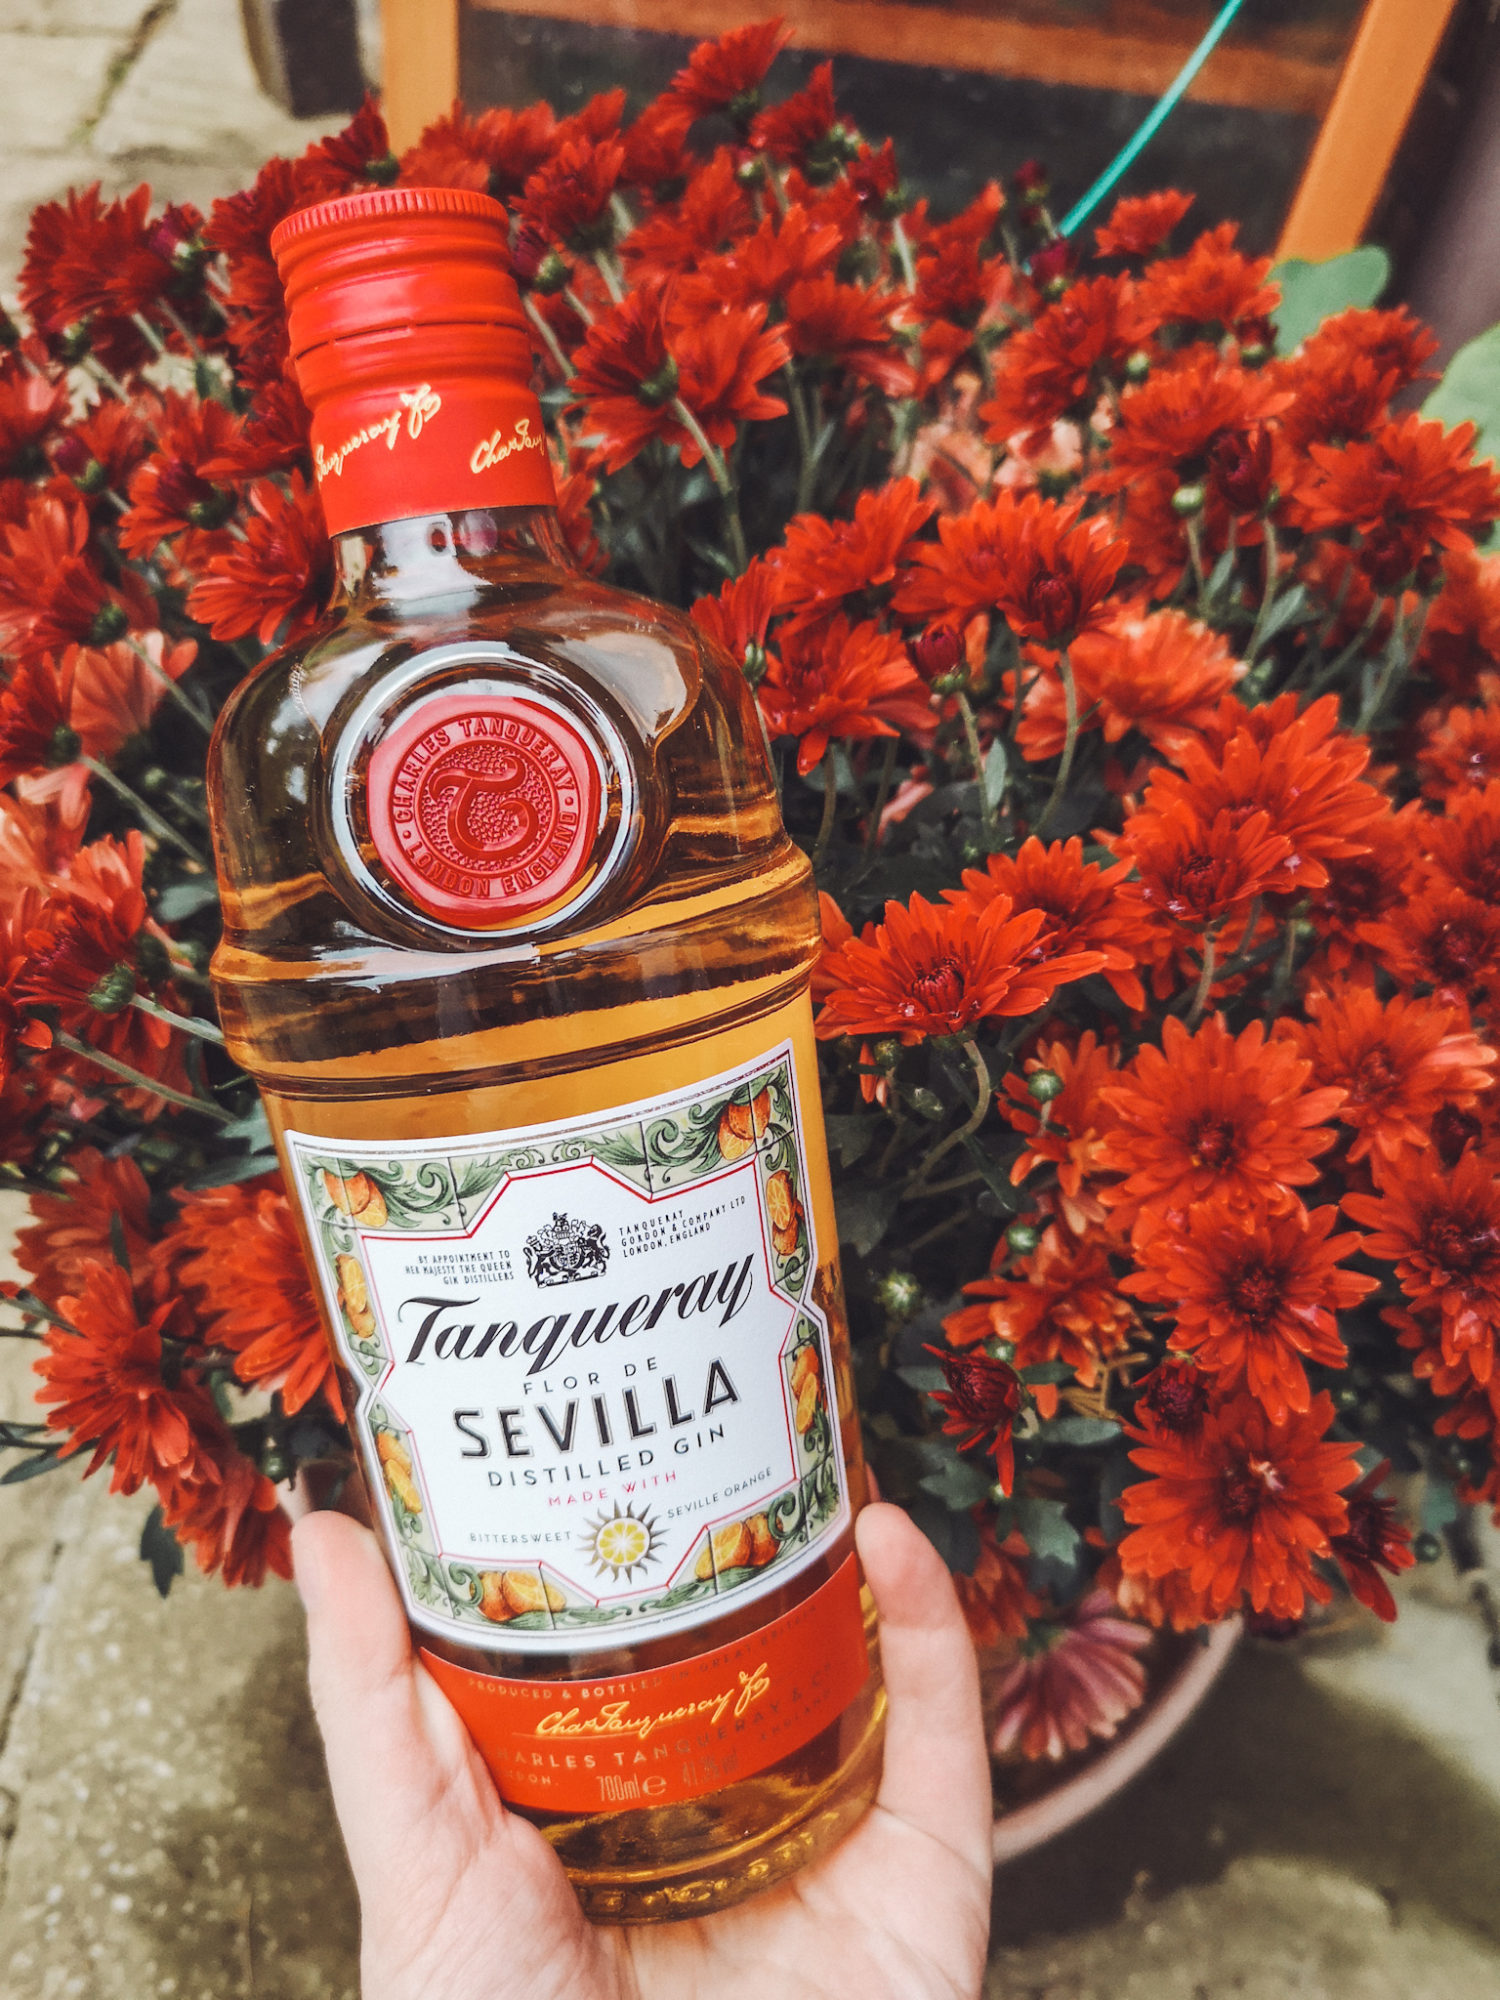 Gluten Free Tanqueray Sevilla gin with flowers